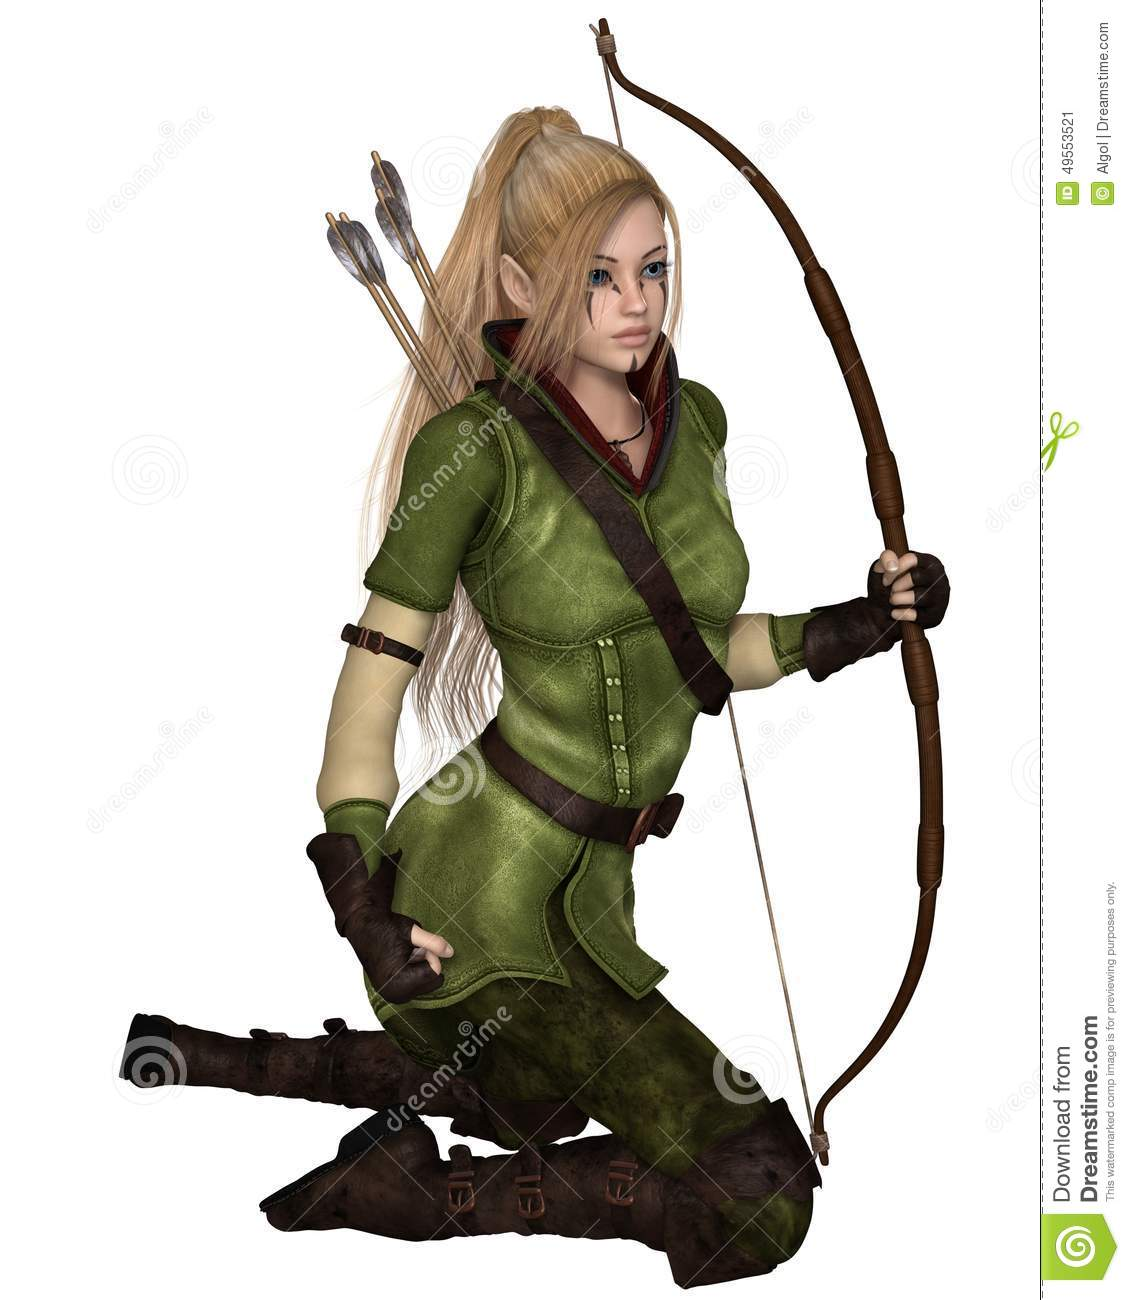 Fantasy illustration of a blonde female elf archer with bow and arrows ...